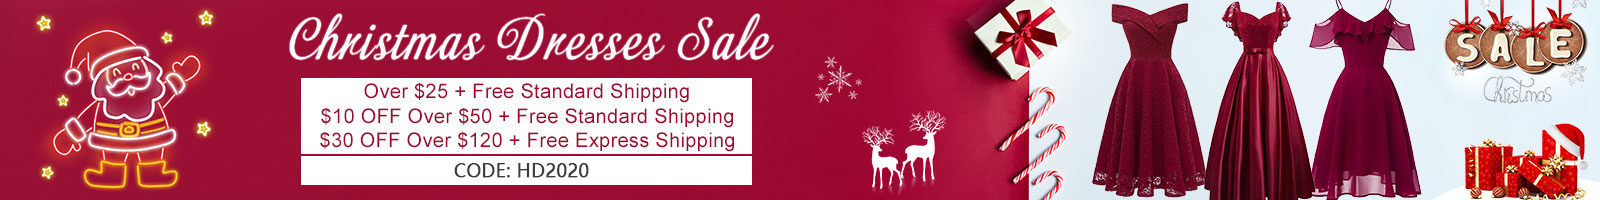 christmas dresses sale